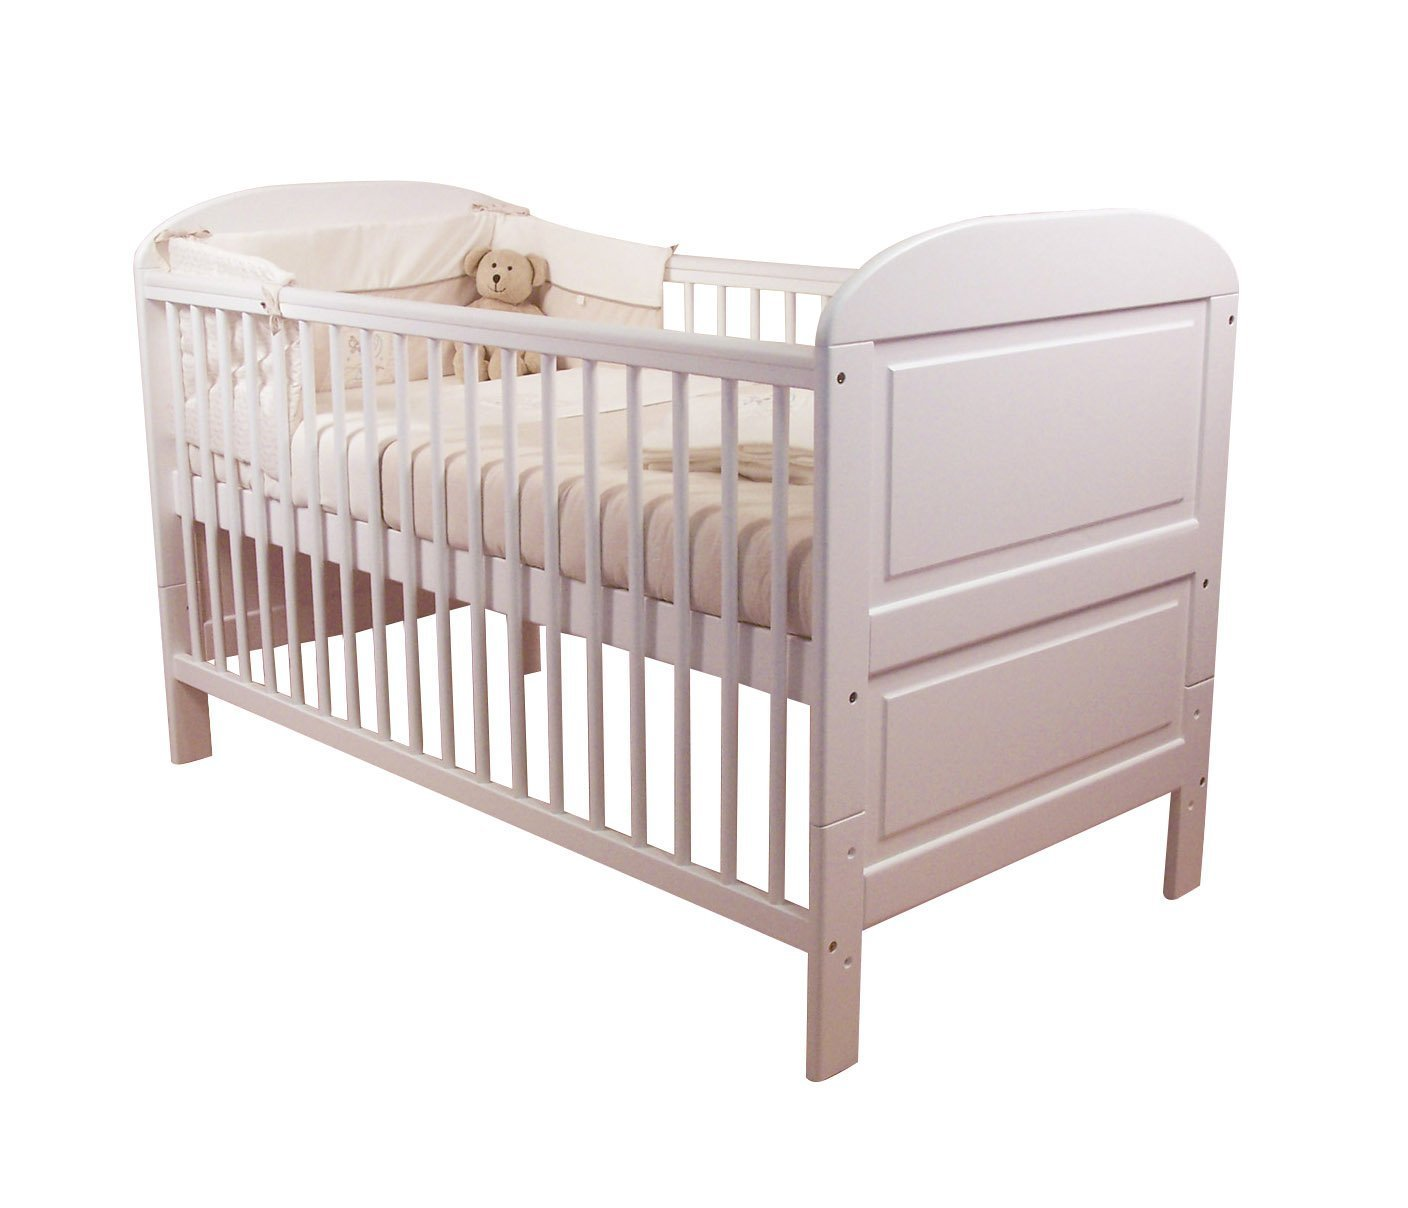 Is It Always Worth It To Buy The Cot?